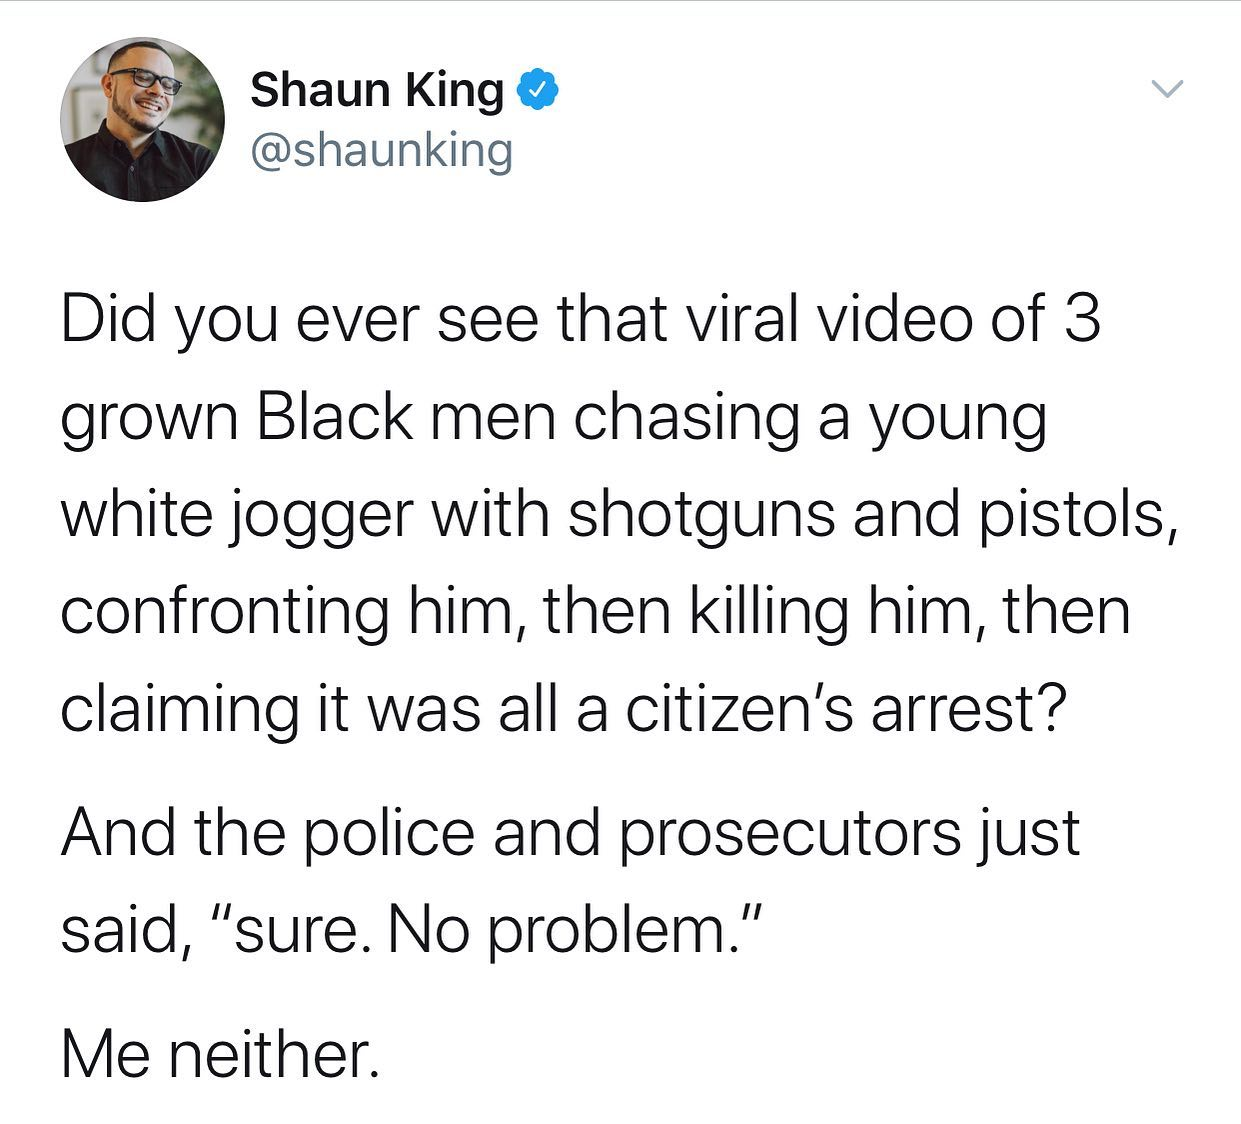 Political, Arbery, DA, McMichael, Second Amendment, GOP Political Memes Political, Arbery, DA, McMichael, Second Amendment, GOP text: Shaun King @shaunking Did you ever see that viral video of 3 grown Black men chasing a young white jogger with shotguns and pistols, confronting him, then killing him, then claiming it was all a citizen's arrest? And the police and prosecutors just said,